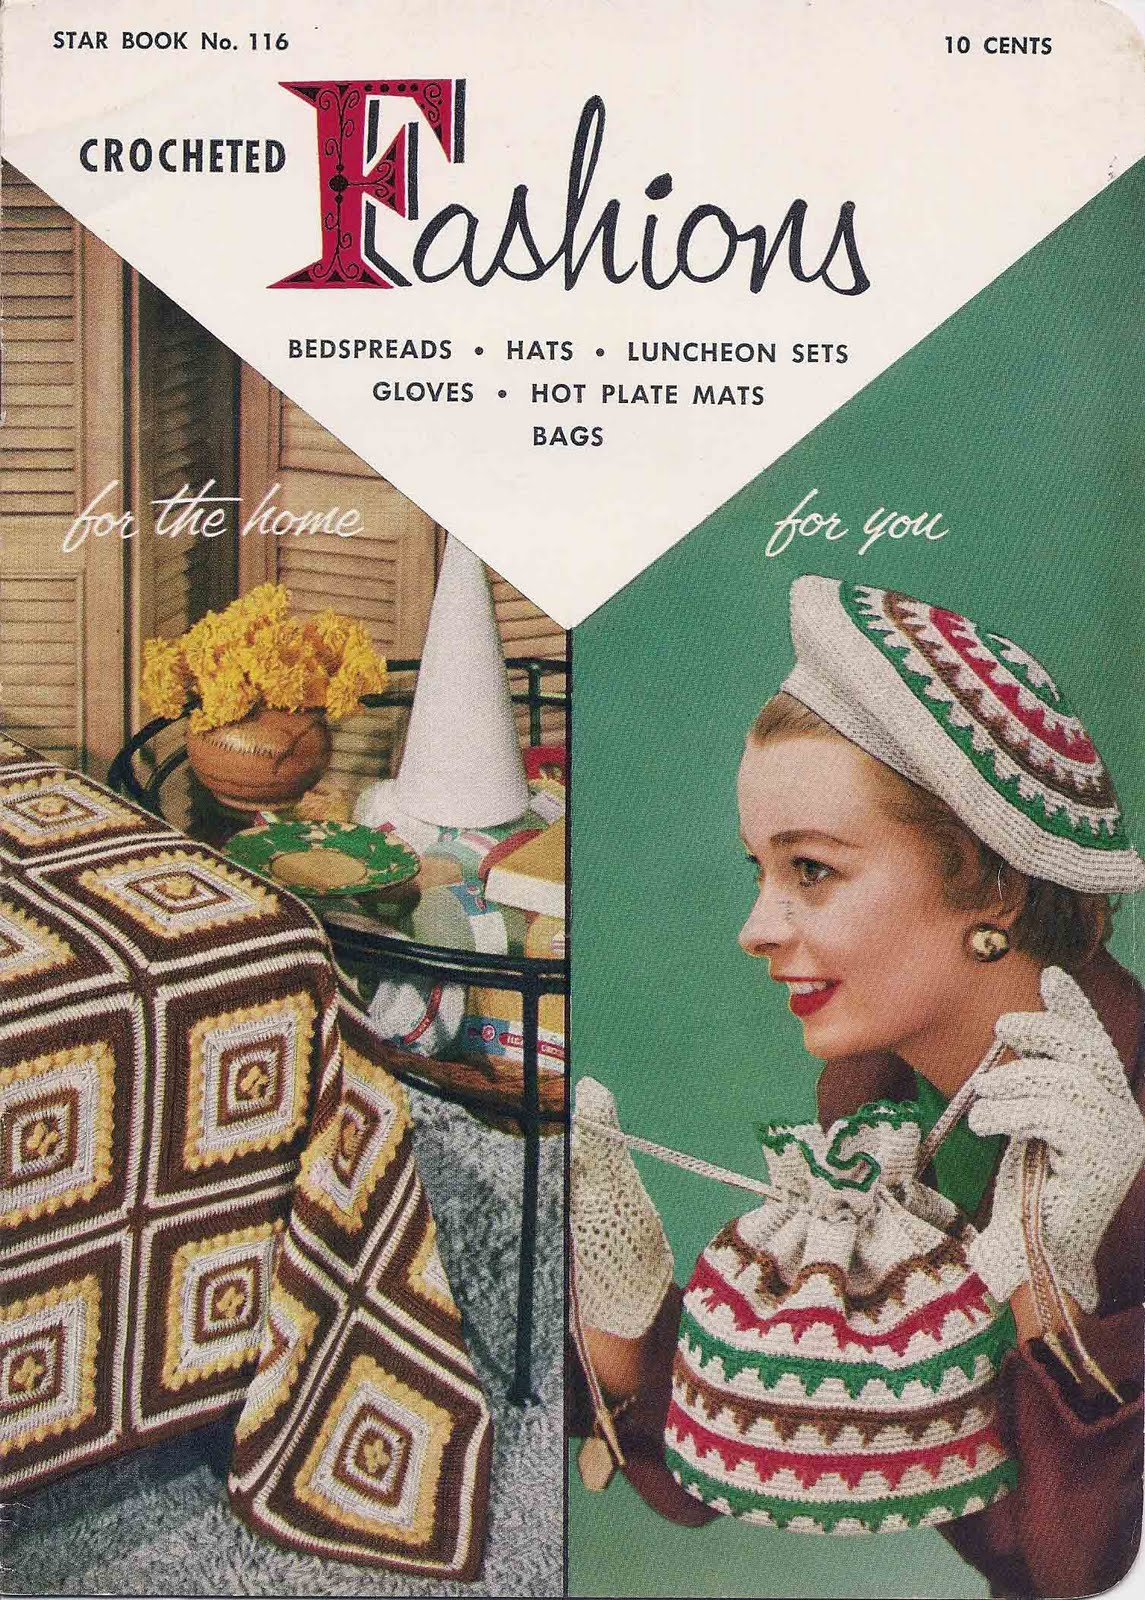 Crocheted Fashions Pattern Book